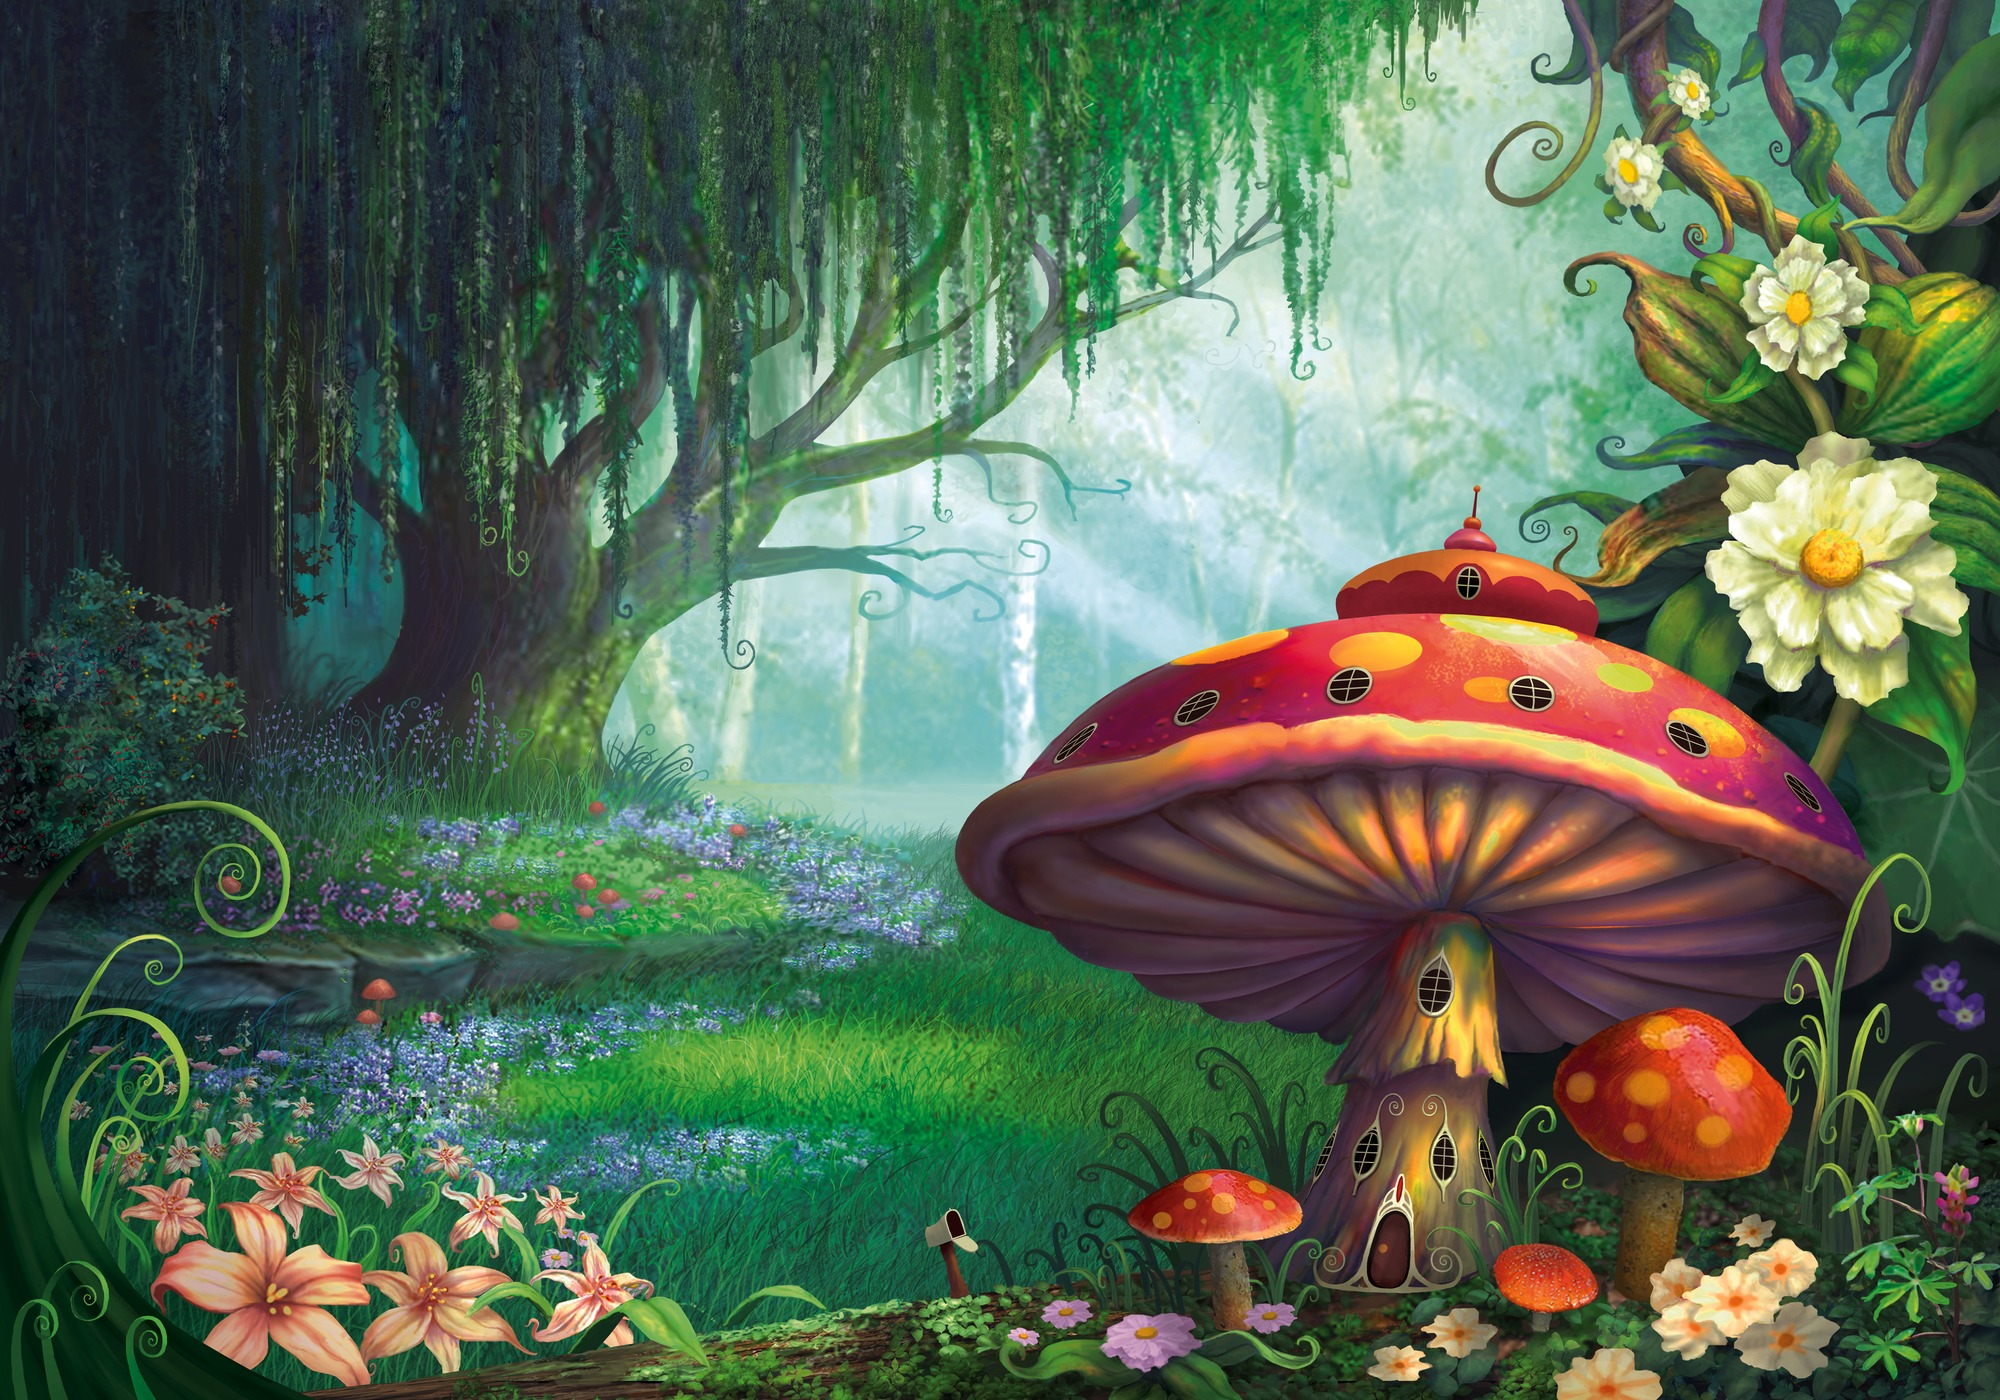 Enchanted Forest Wallpaper Mural By Philip Straub Wallsauce